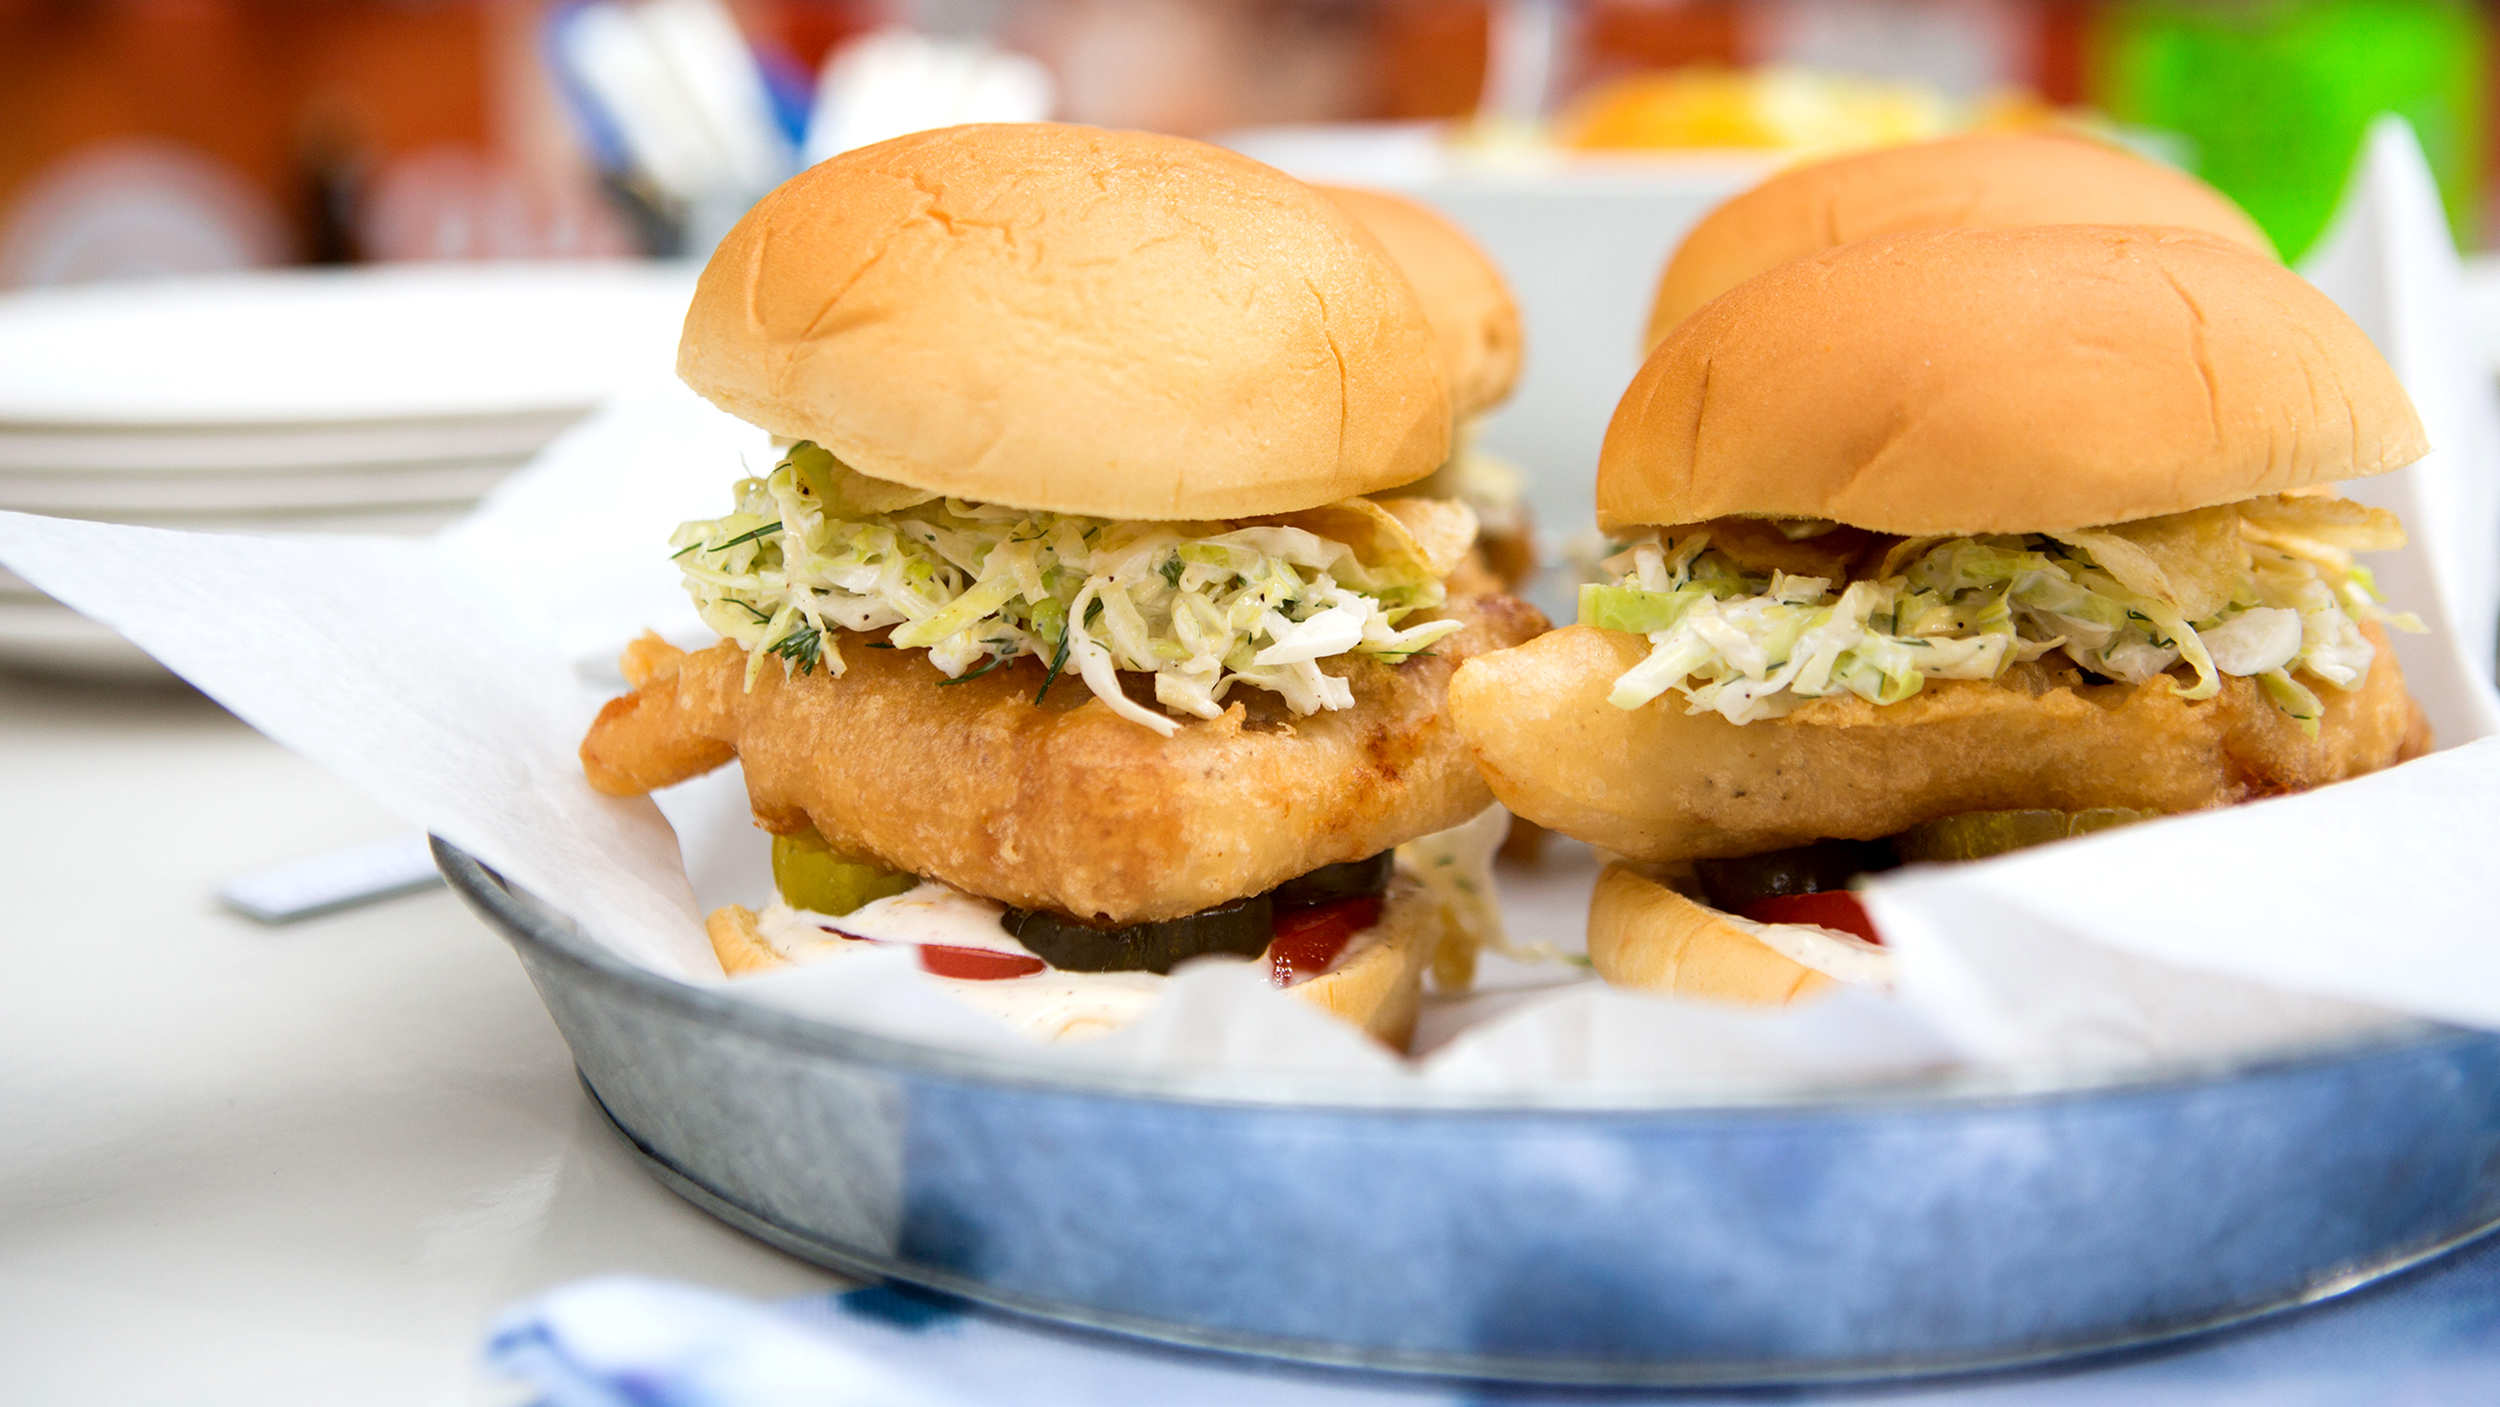 Martha stewart 39 s fish fry recipes fried fish sandwiches for Fish sandwich recipe